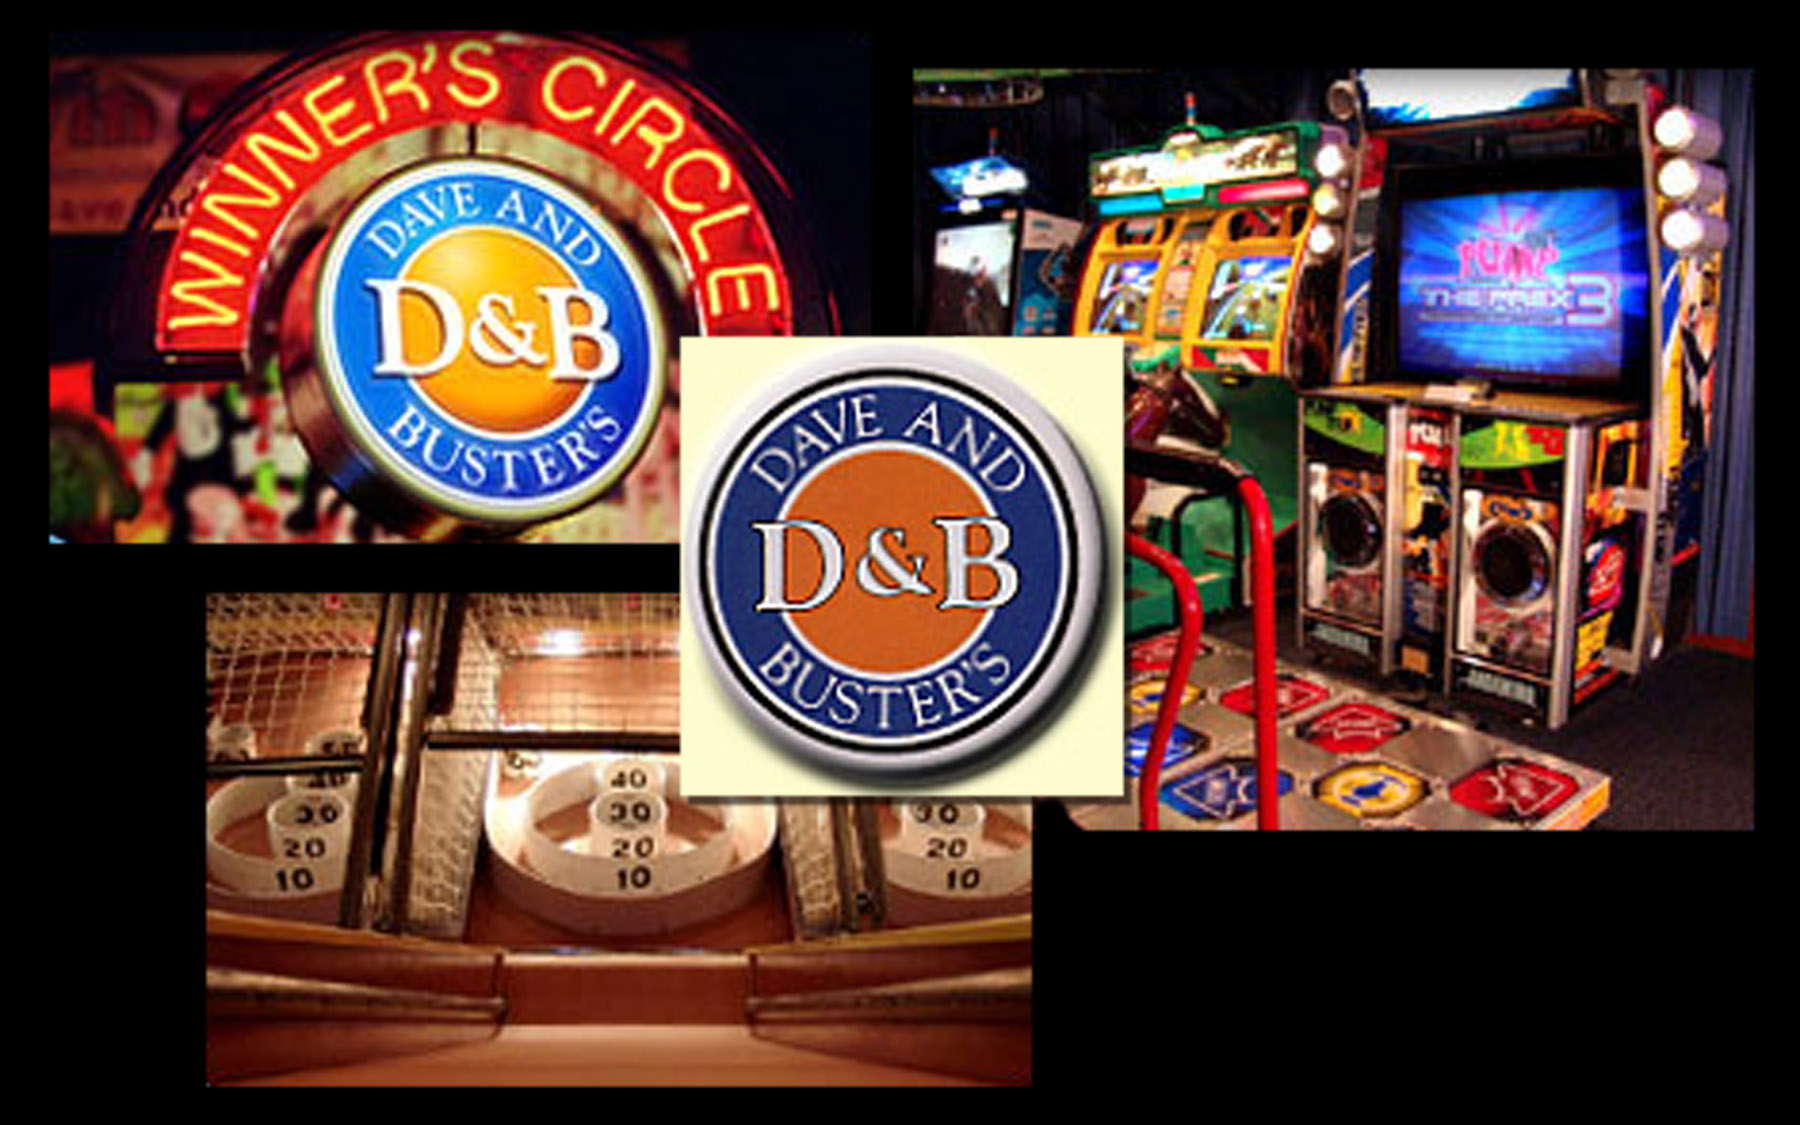 Dave & Buster's in Hilliard, OH